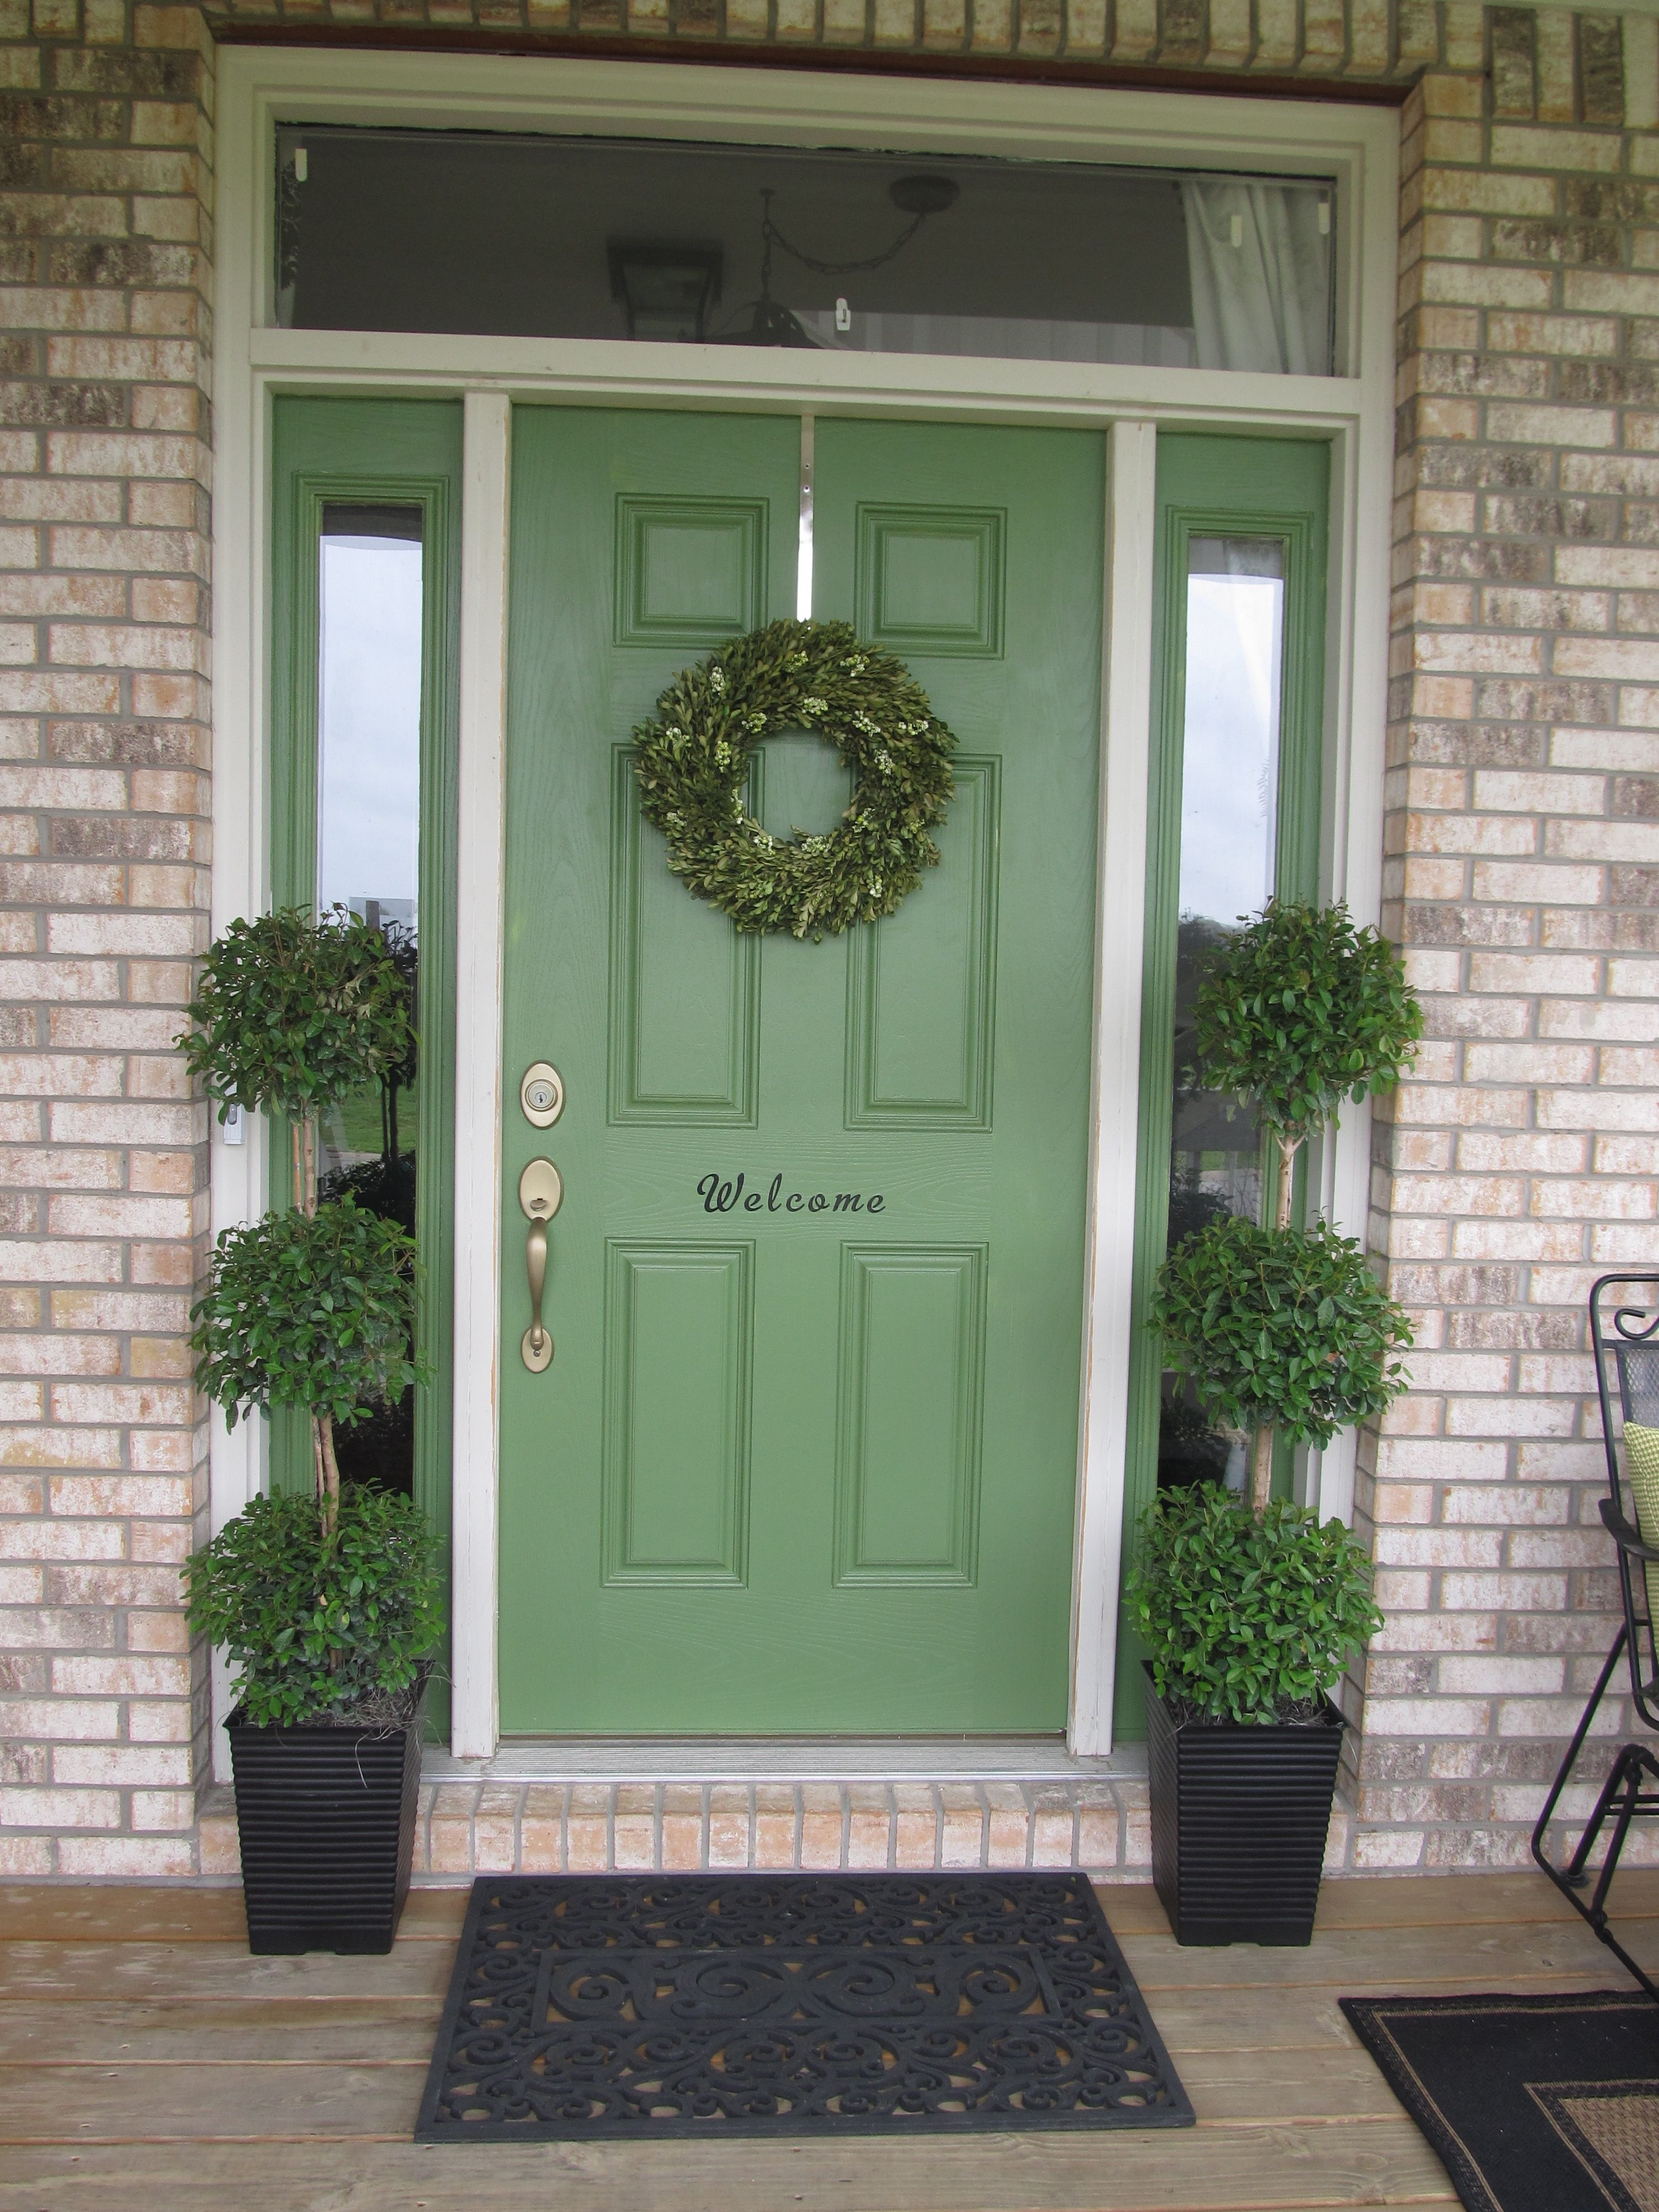 First impressions front door style doors pinterest Gray front door meaning